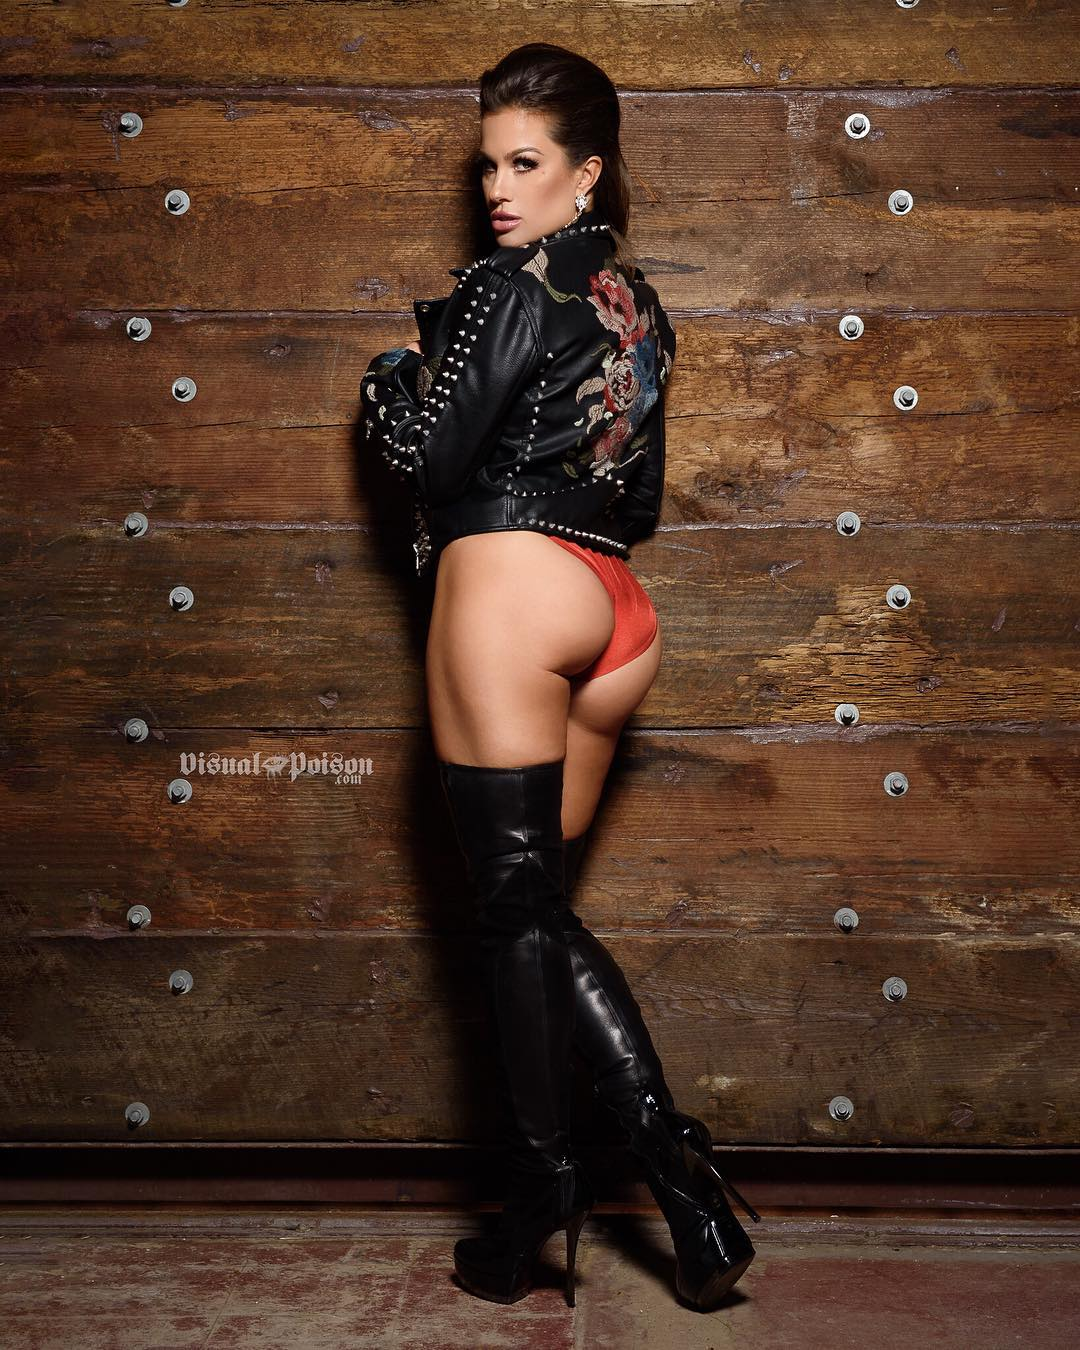 Brooke Tessmacher as sexy pictures